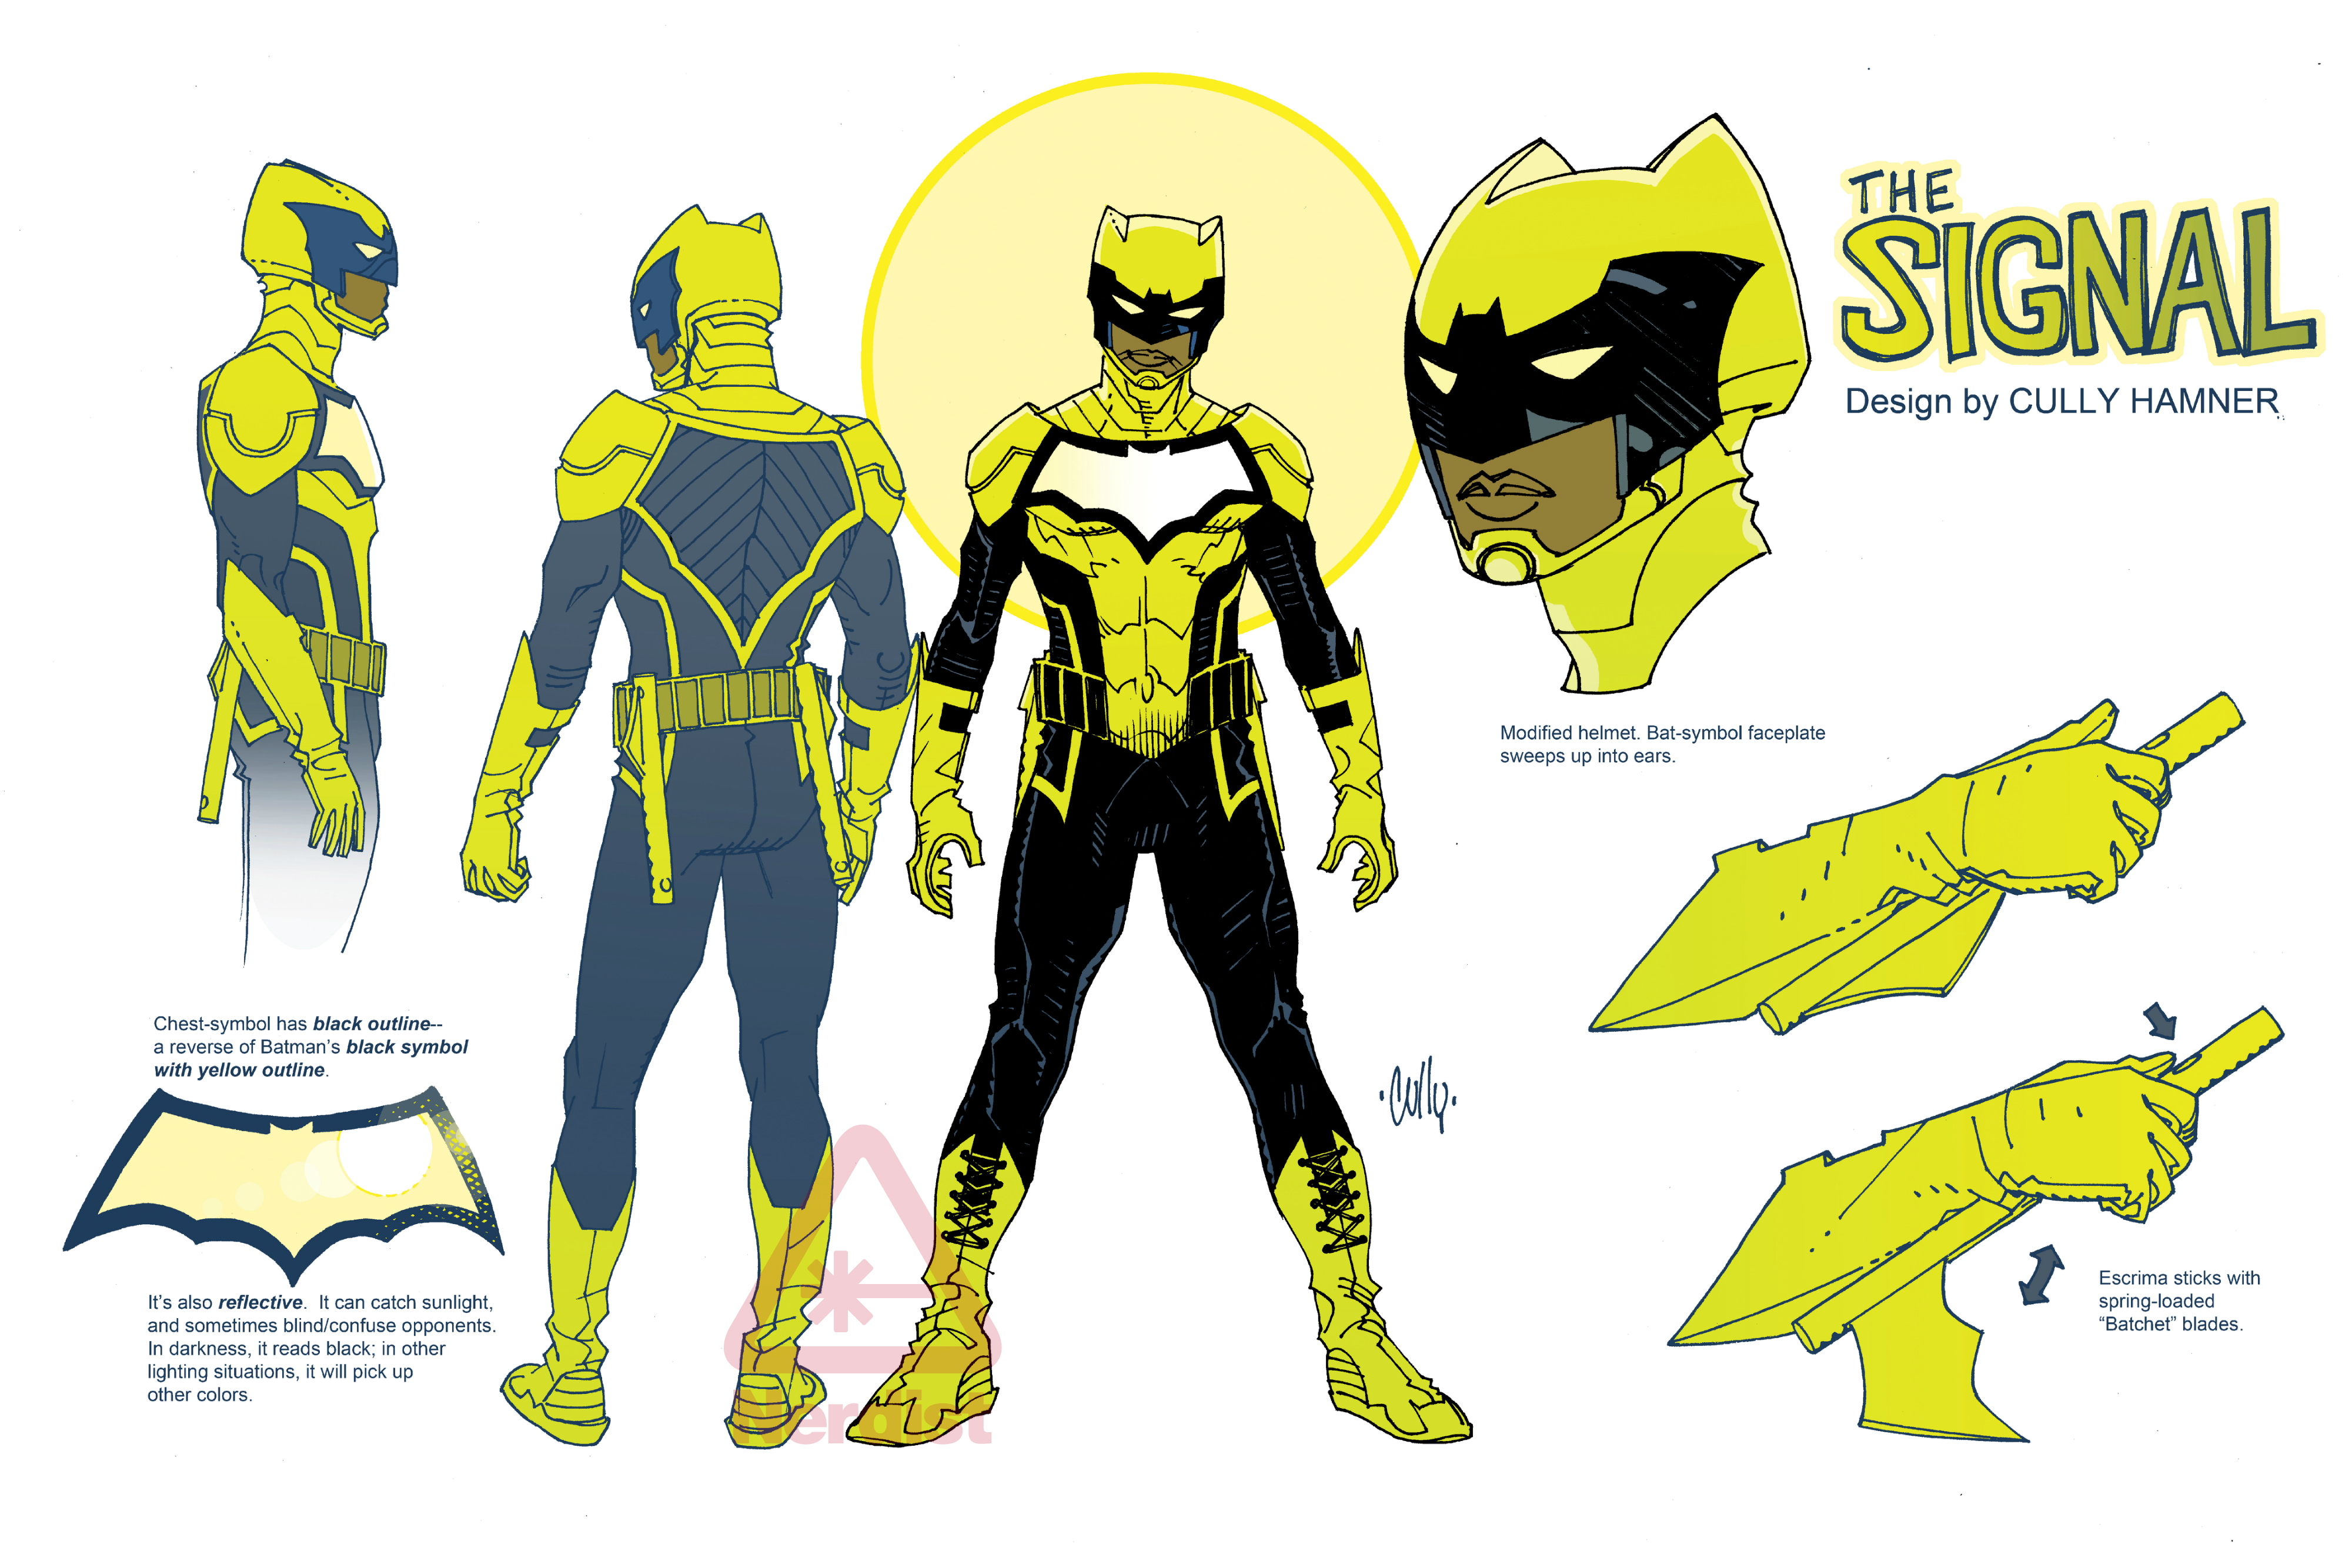 First Look At Cully Hamners Batman And The Signal Designs